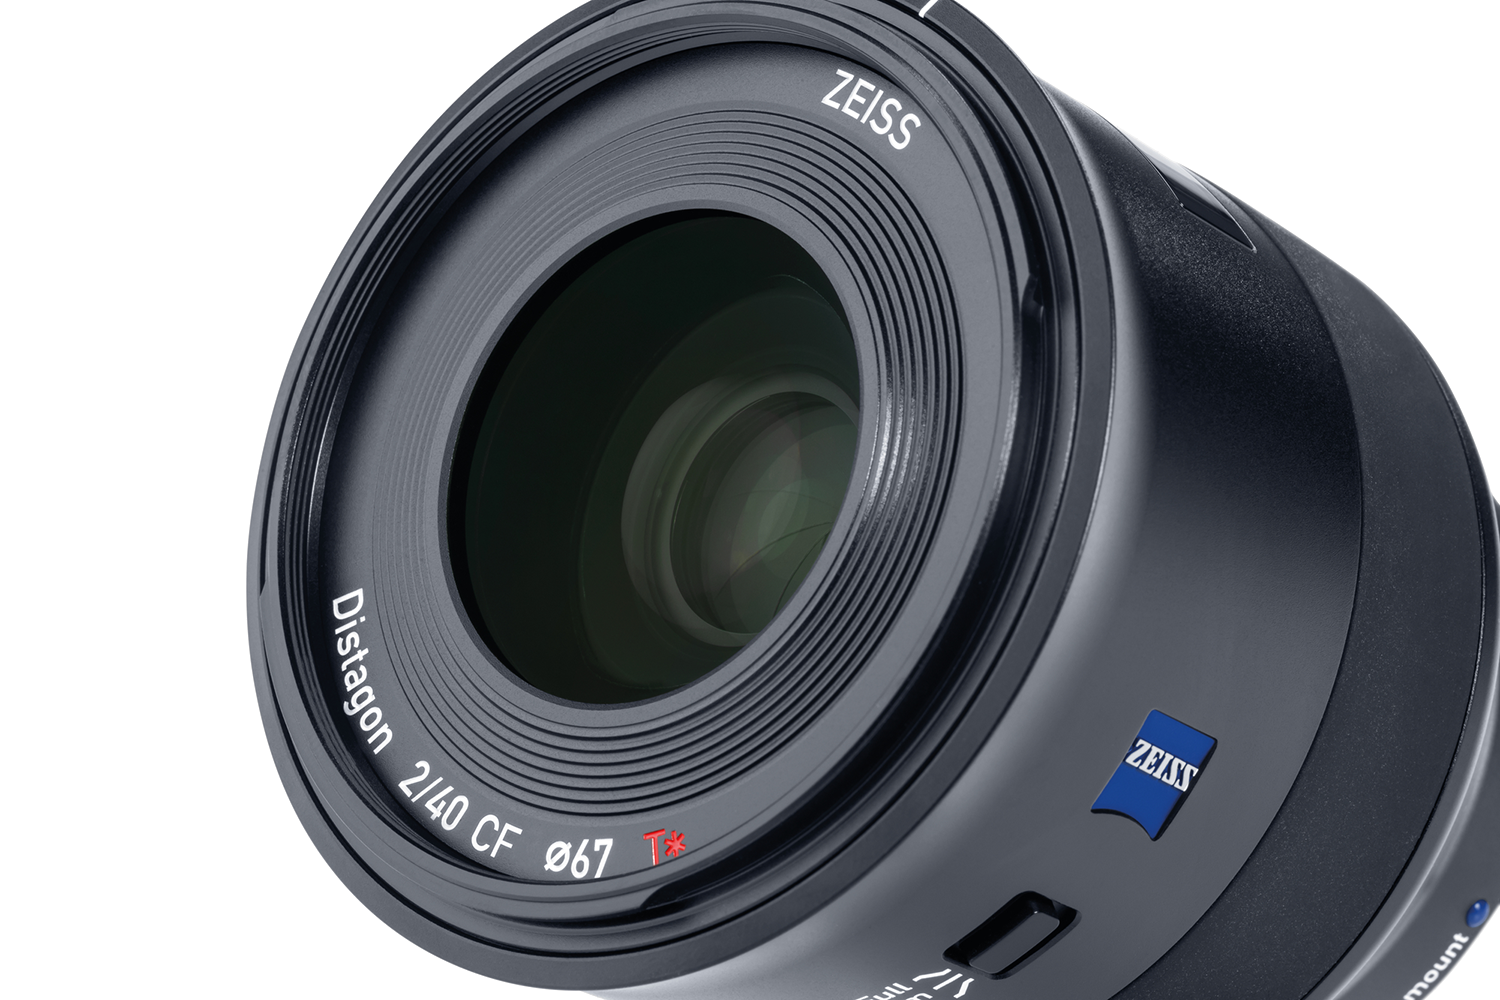 JUST ANNOUNCED: The Most Versatile Lens in the ZEISS Batis Family